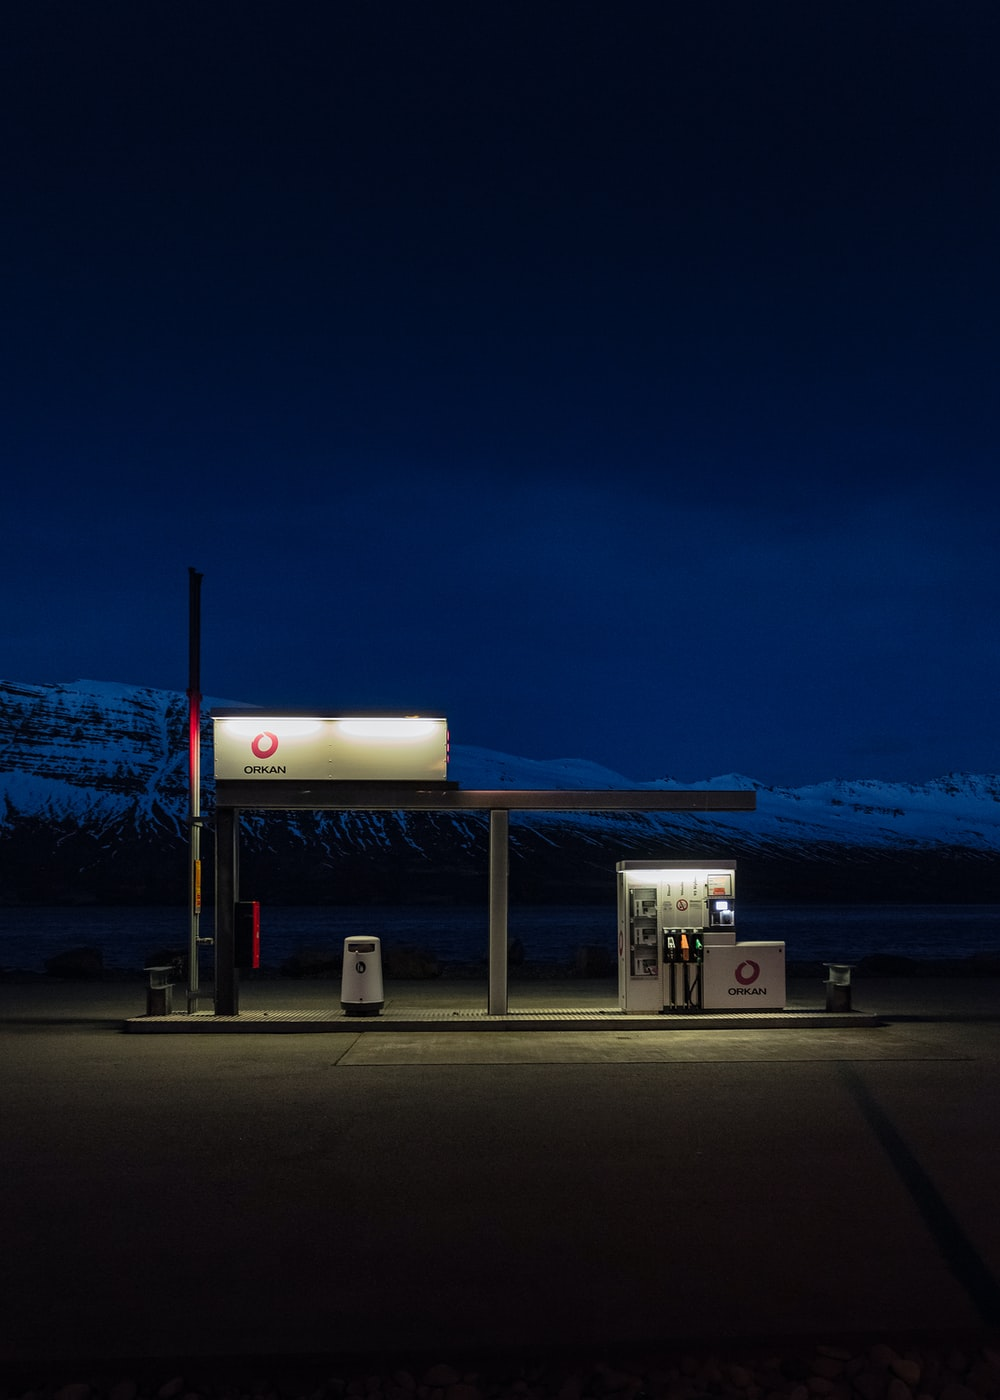 gasoline station during nighttime